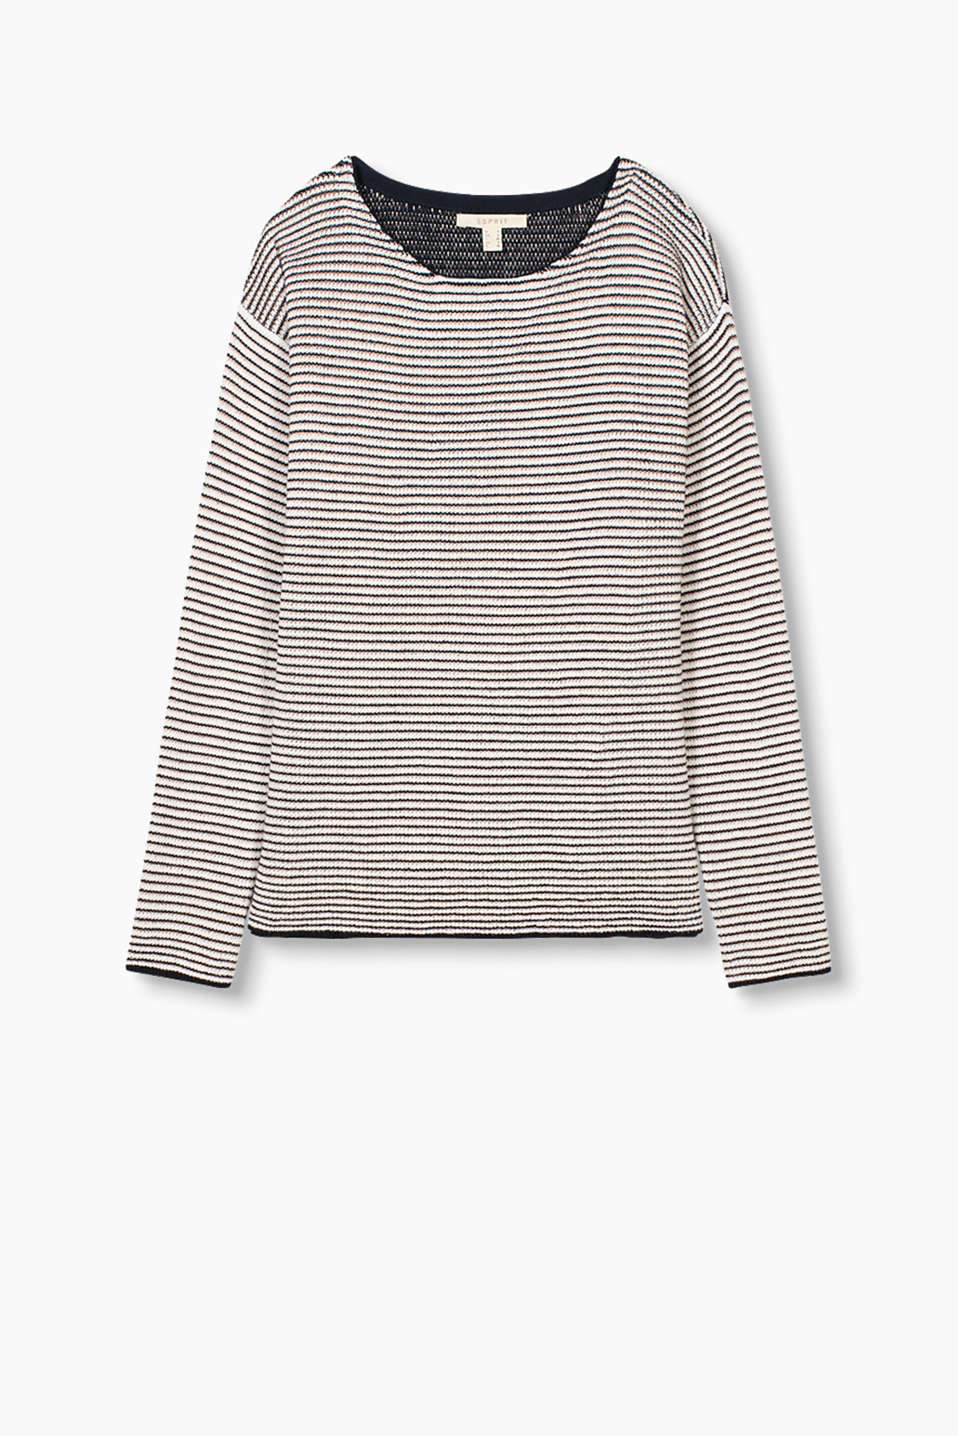 with textured and lurex stripes